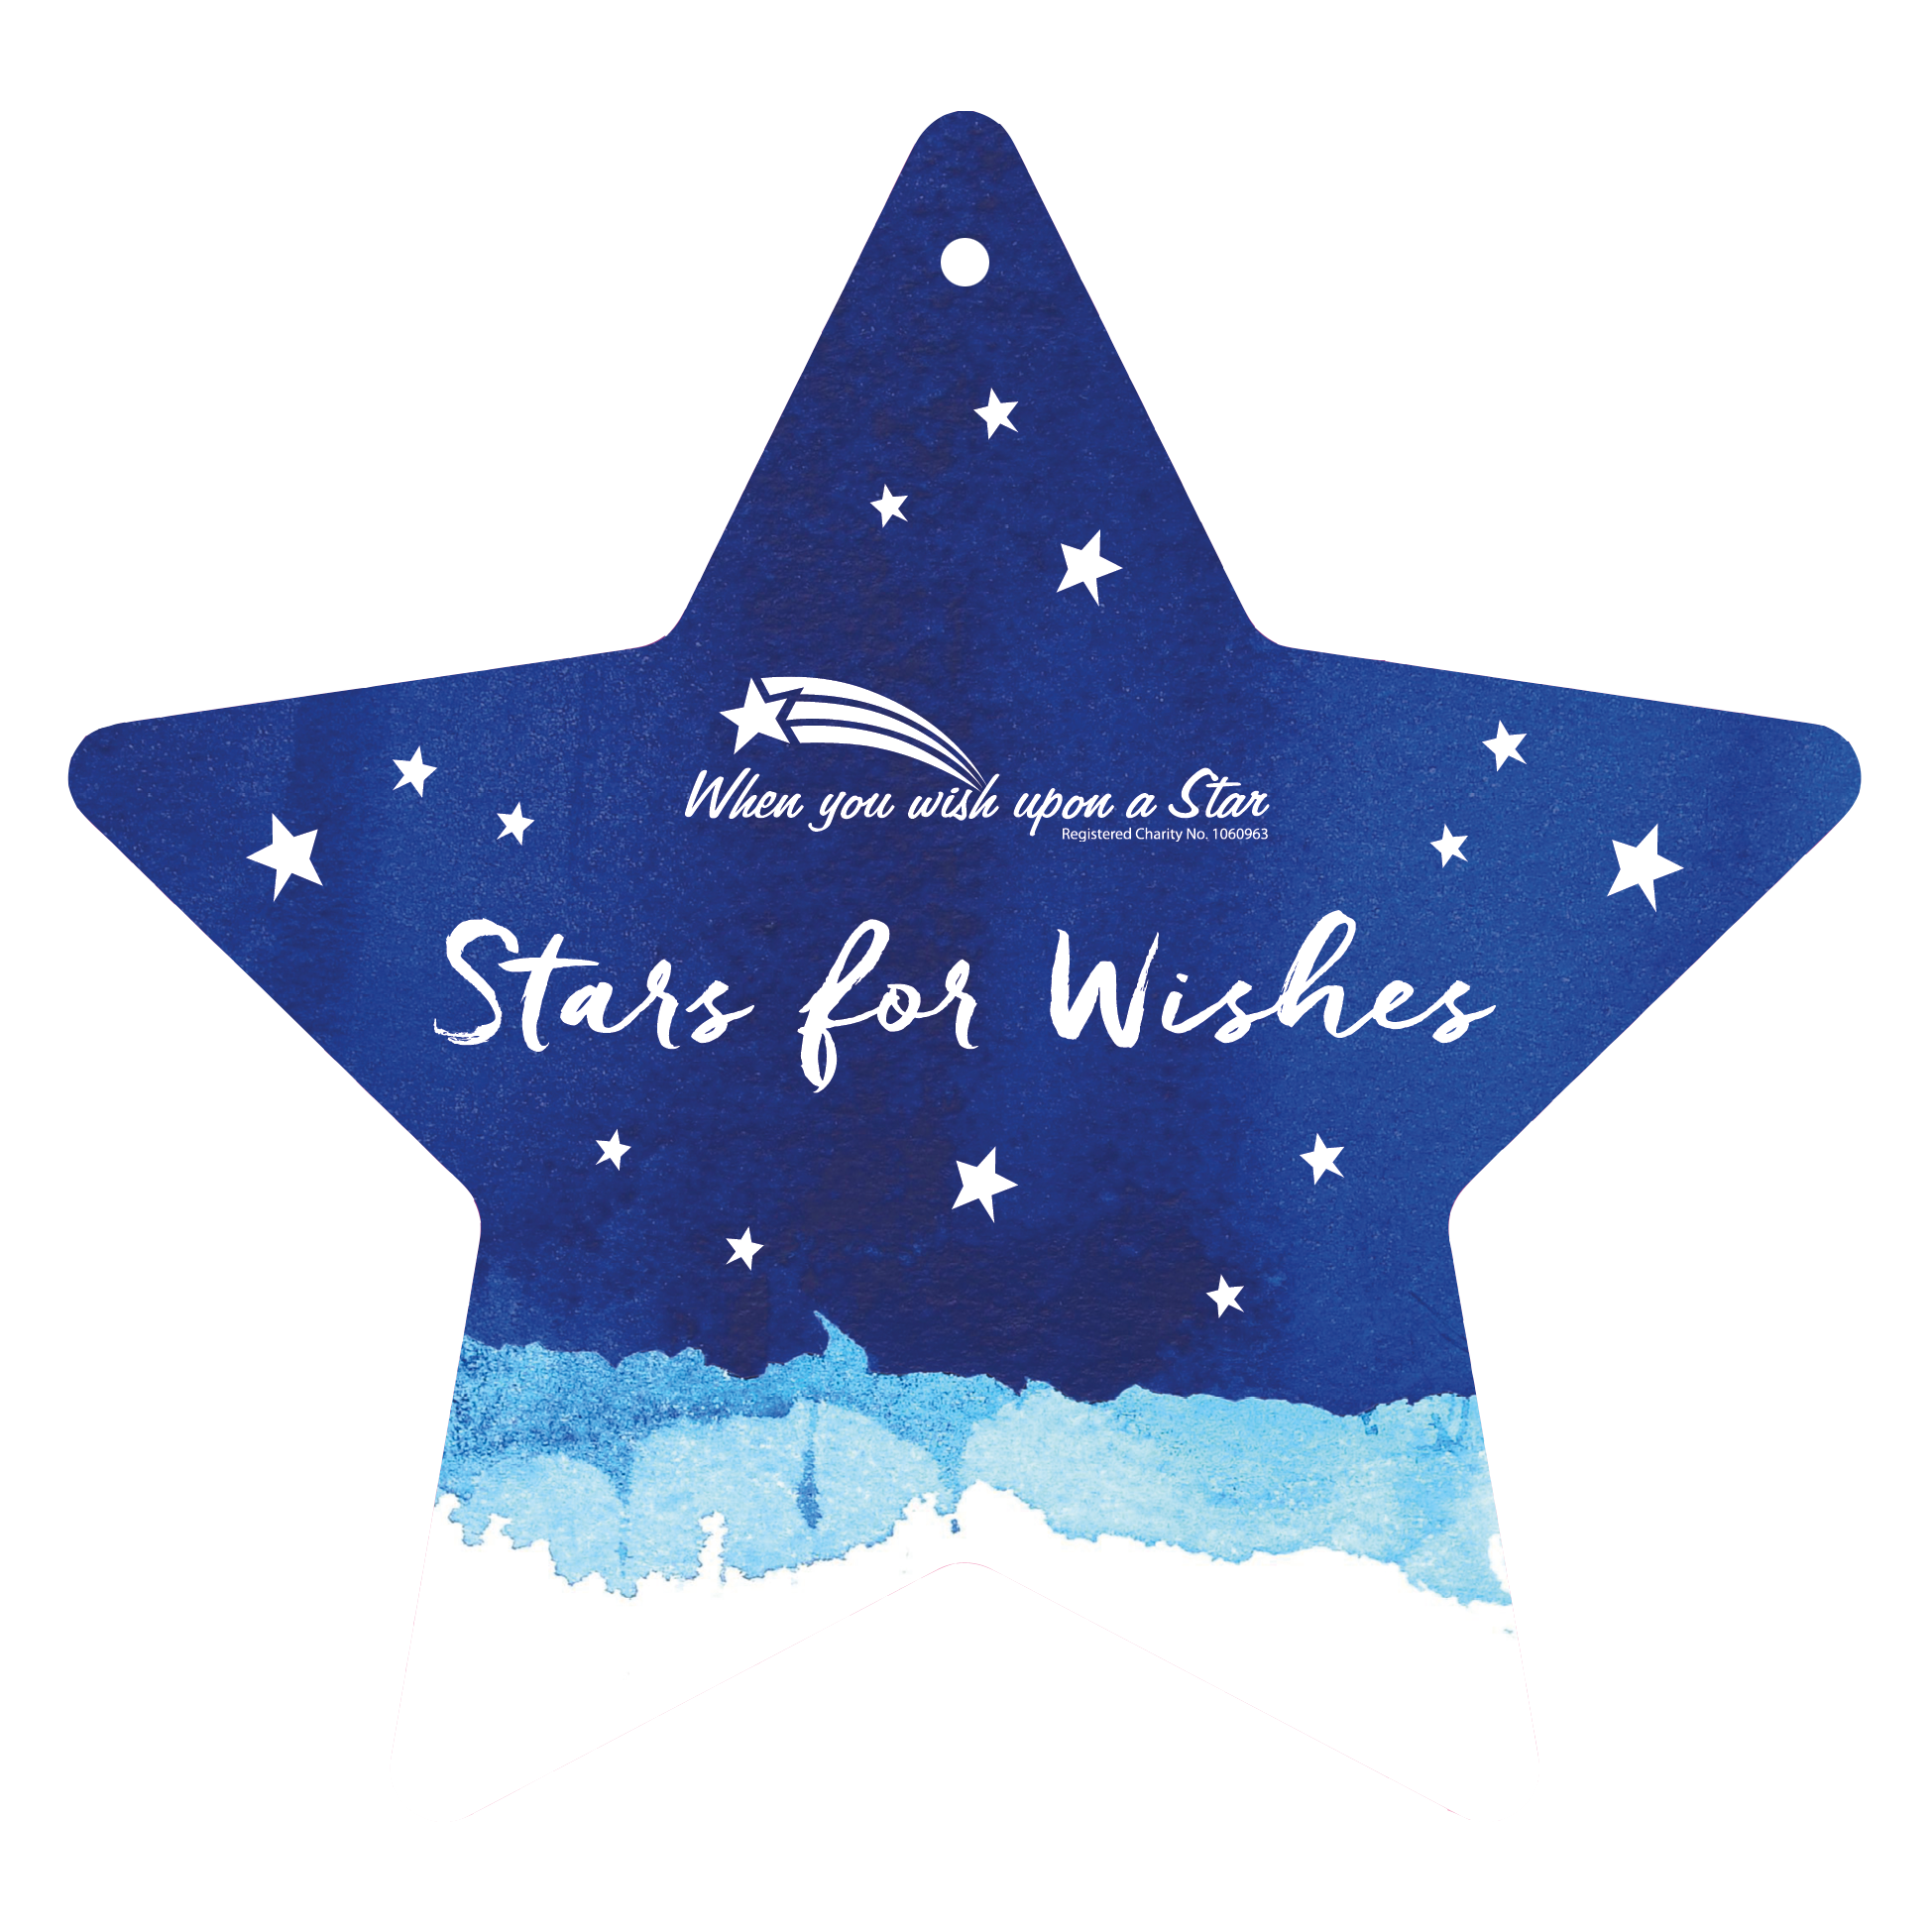 SFW Star decoration 3AW2 Front (2) - Wish Upon A Star PNG